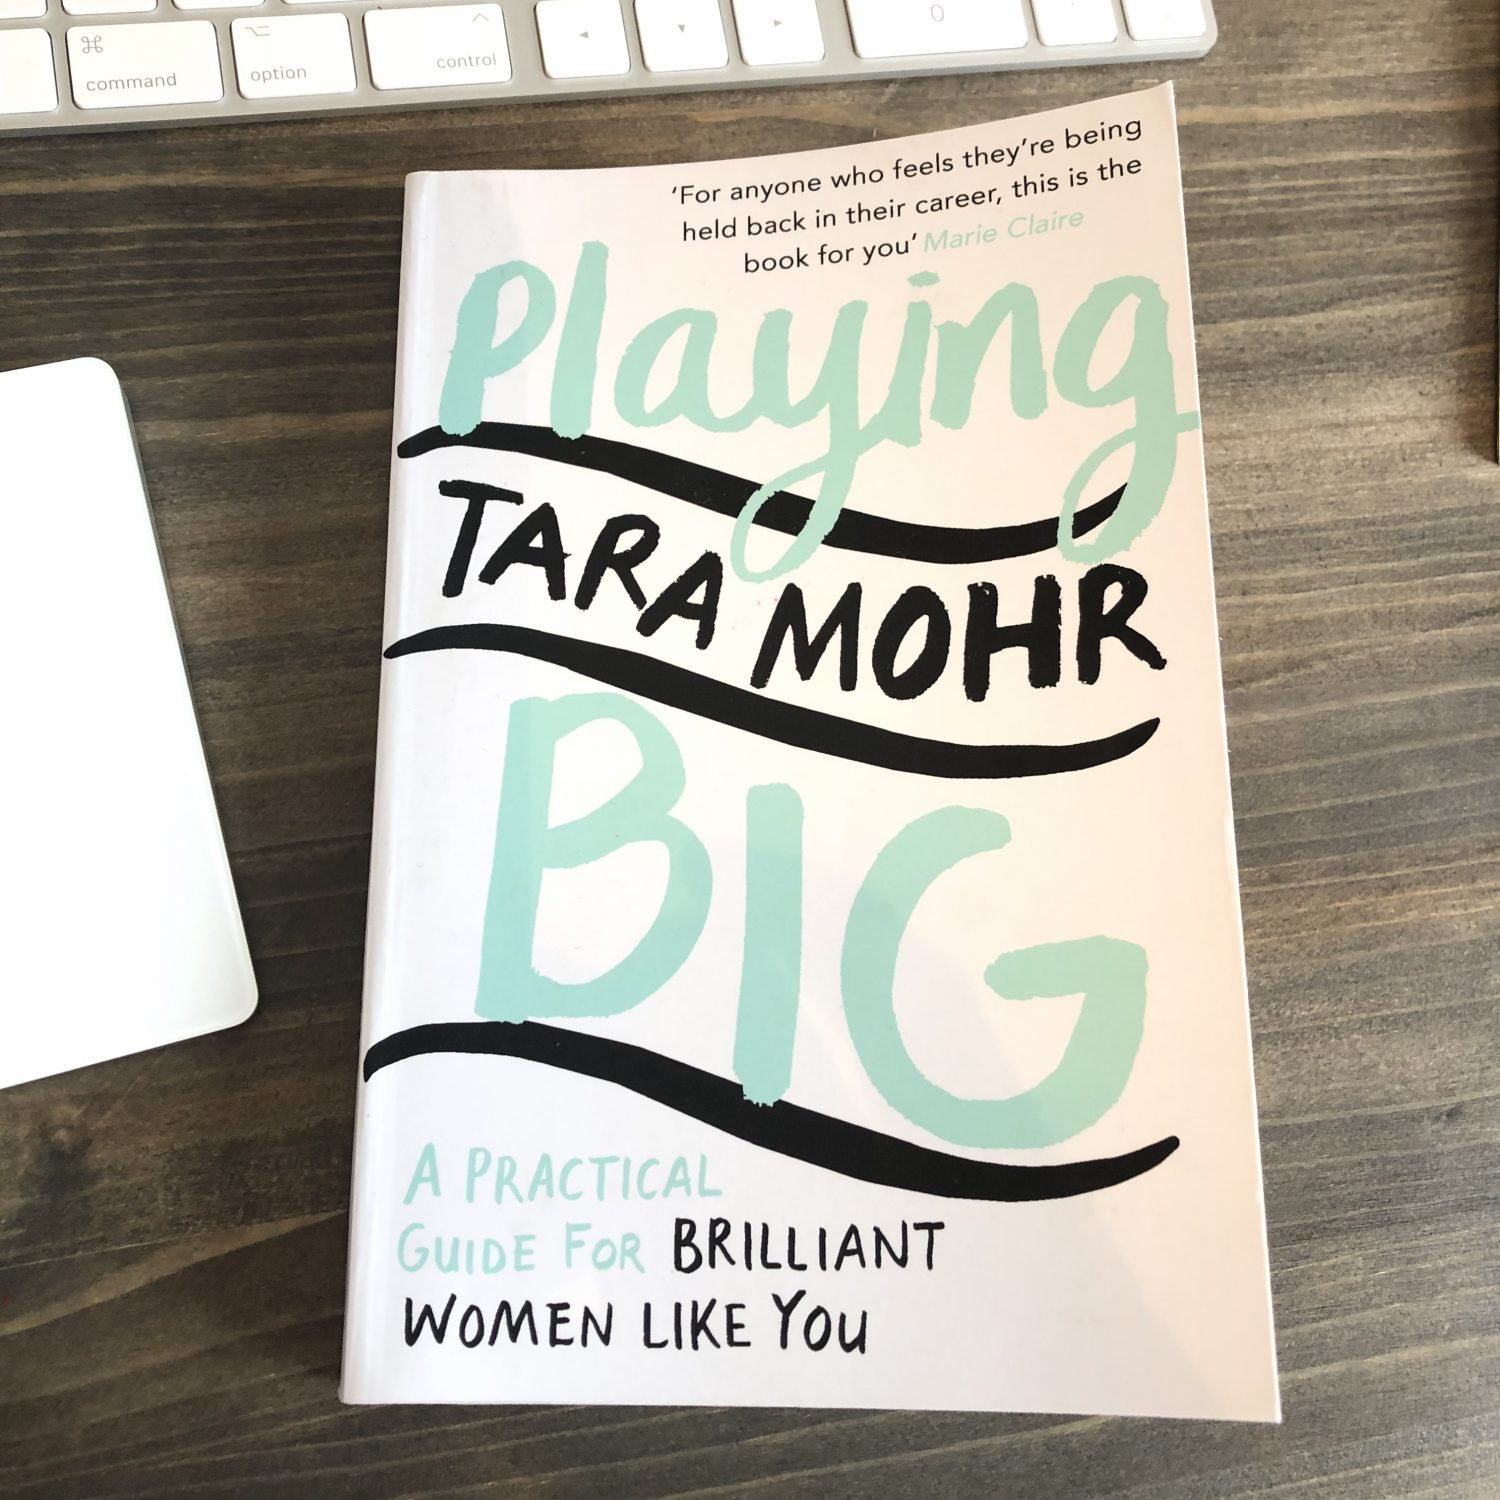 Picture of a book - Playing it Big, a practical guide for brilliant women like you.  By Tara Mohr.